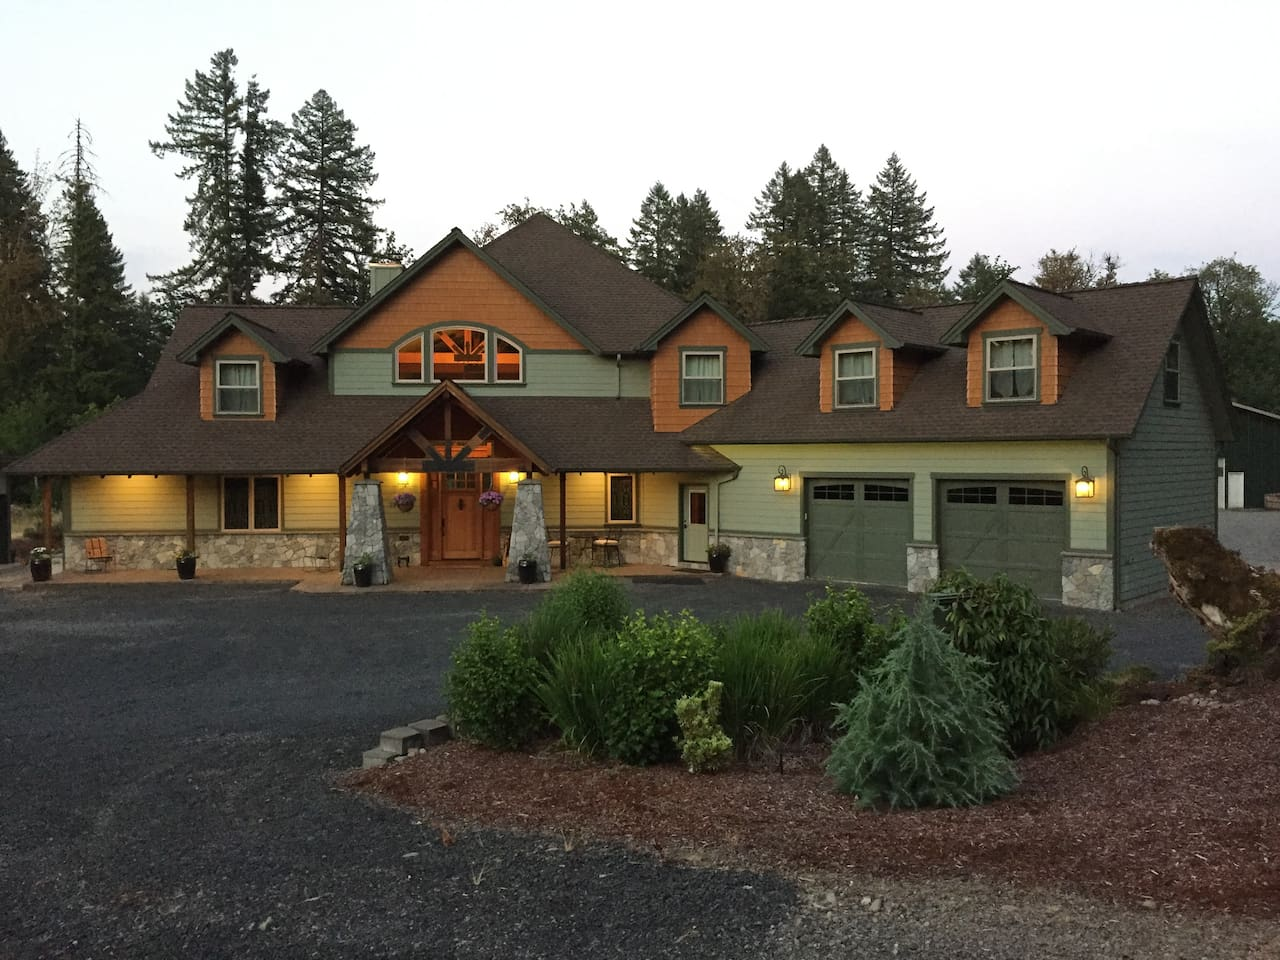 Queen Room Cascade Mountain Lodge - Houses for Rent in Lyons, Oregon ...